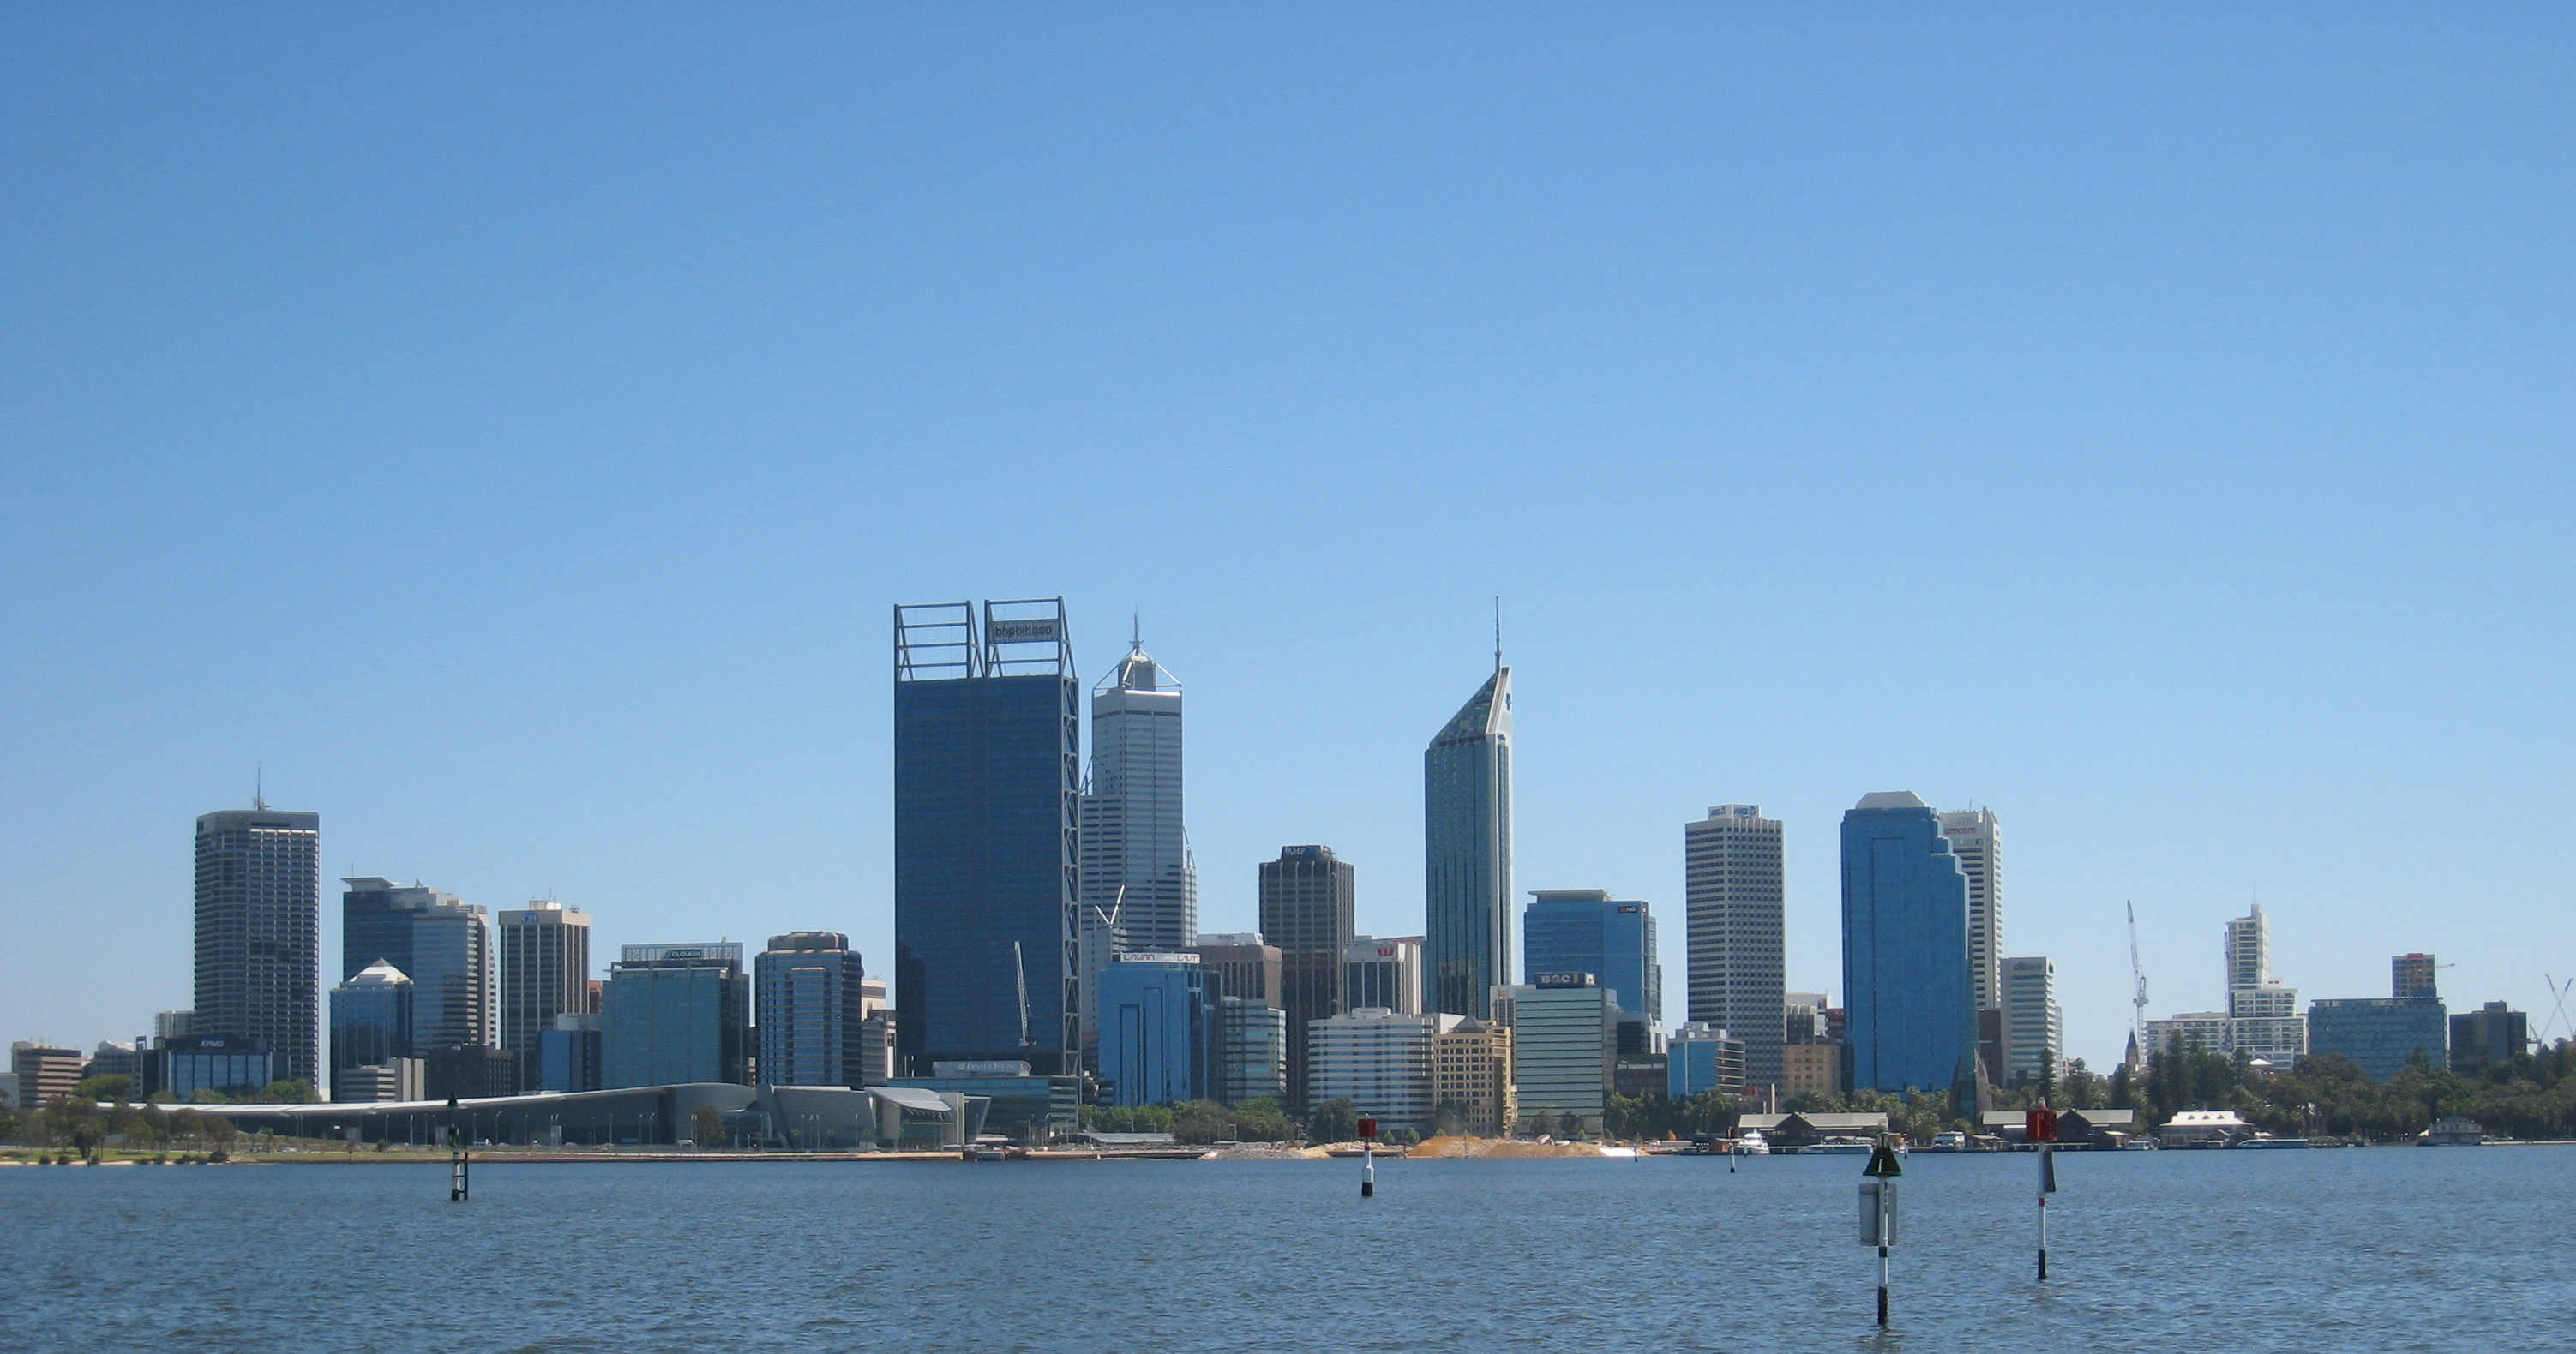 Contact protos consulting international for 125 st georges terrace perth western australia